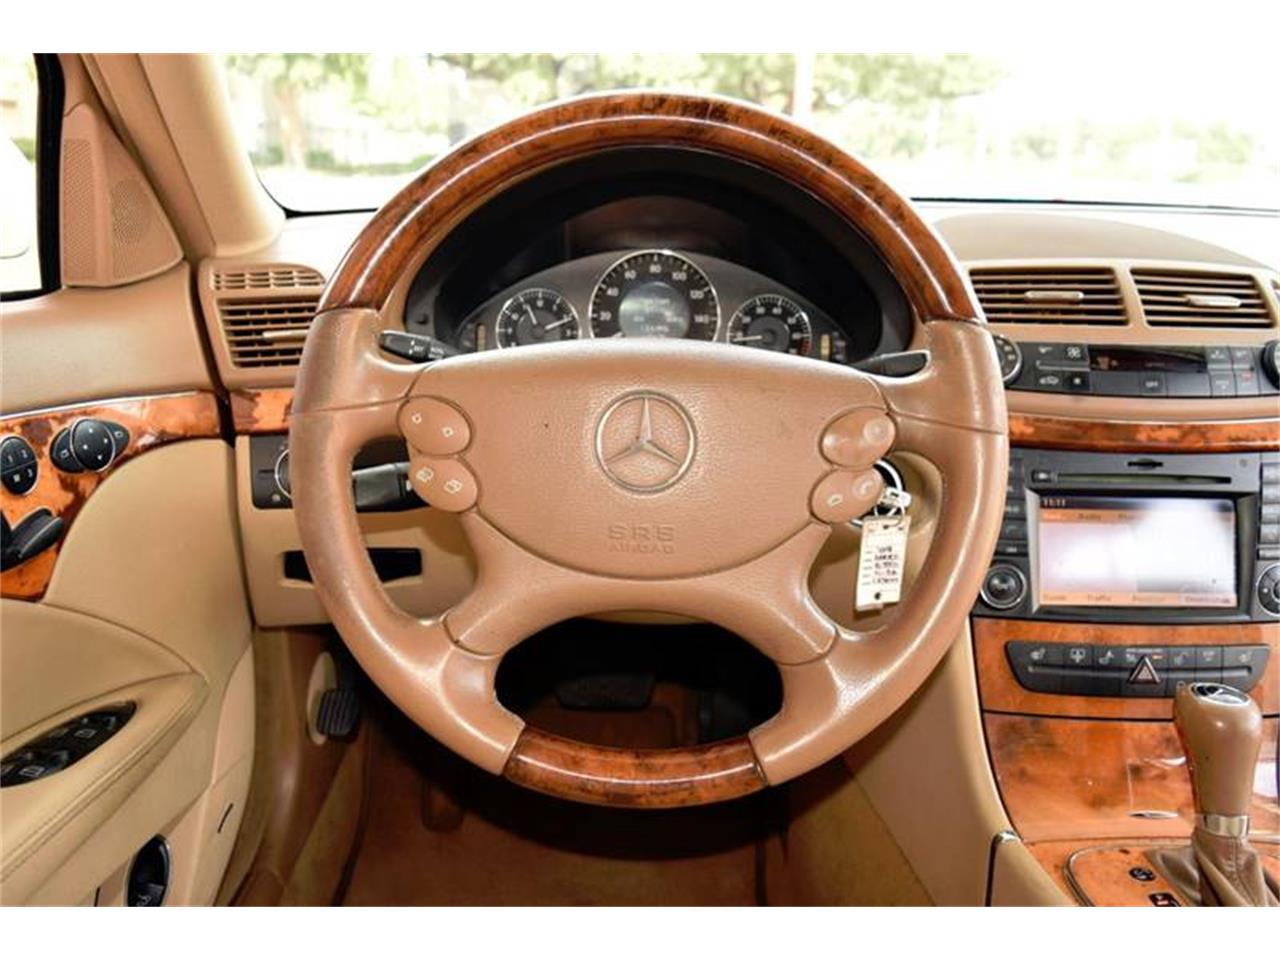 2009 Mercedes-Benz E-Class for sale in Fort Worth, TX – photo 16